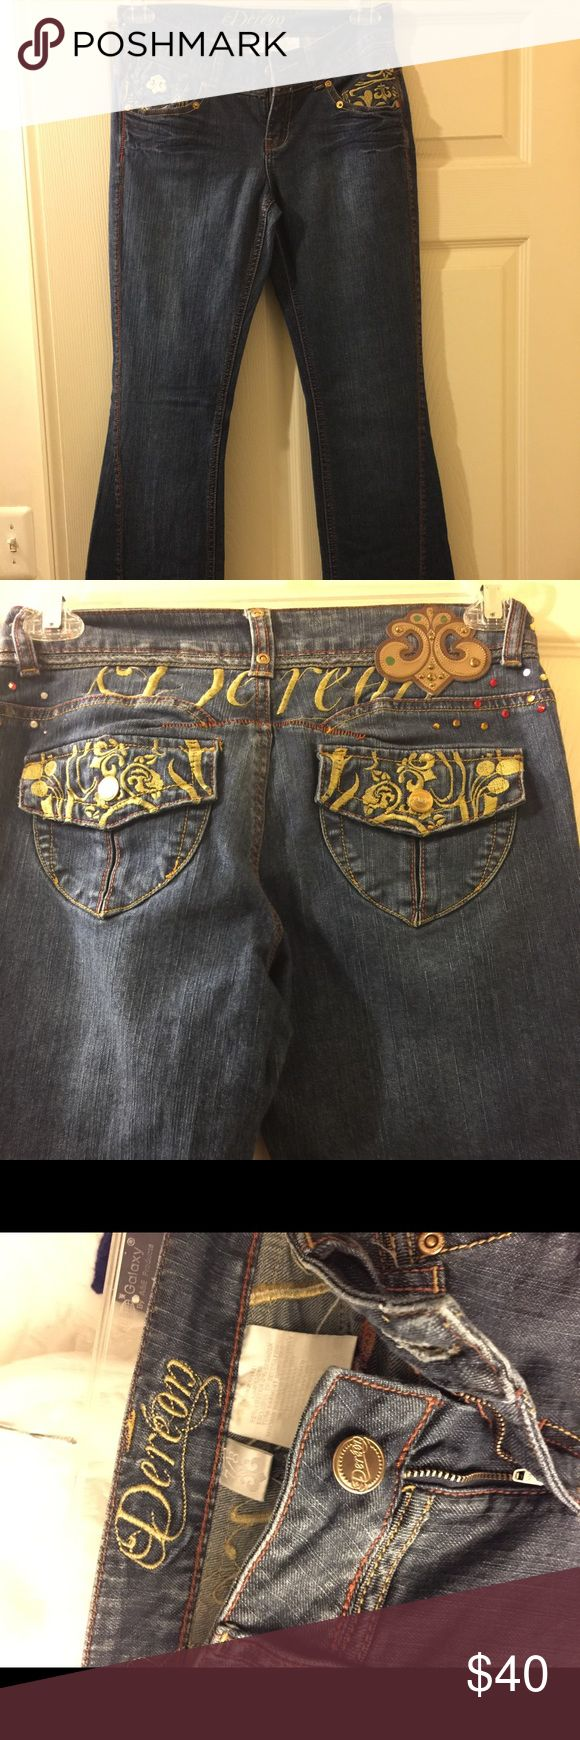 House of Dereon  Women's Jeans ⁉️FINAL MARKDOWN⁉️  DEREON GOLD EMBROIDERED/ COLORFUL RHINESTONES EMBELLISHED BOOT CUT JEANS SZ 7/8 House of Dereon Jeans Boot Cut